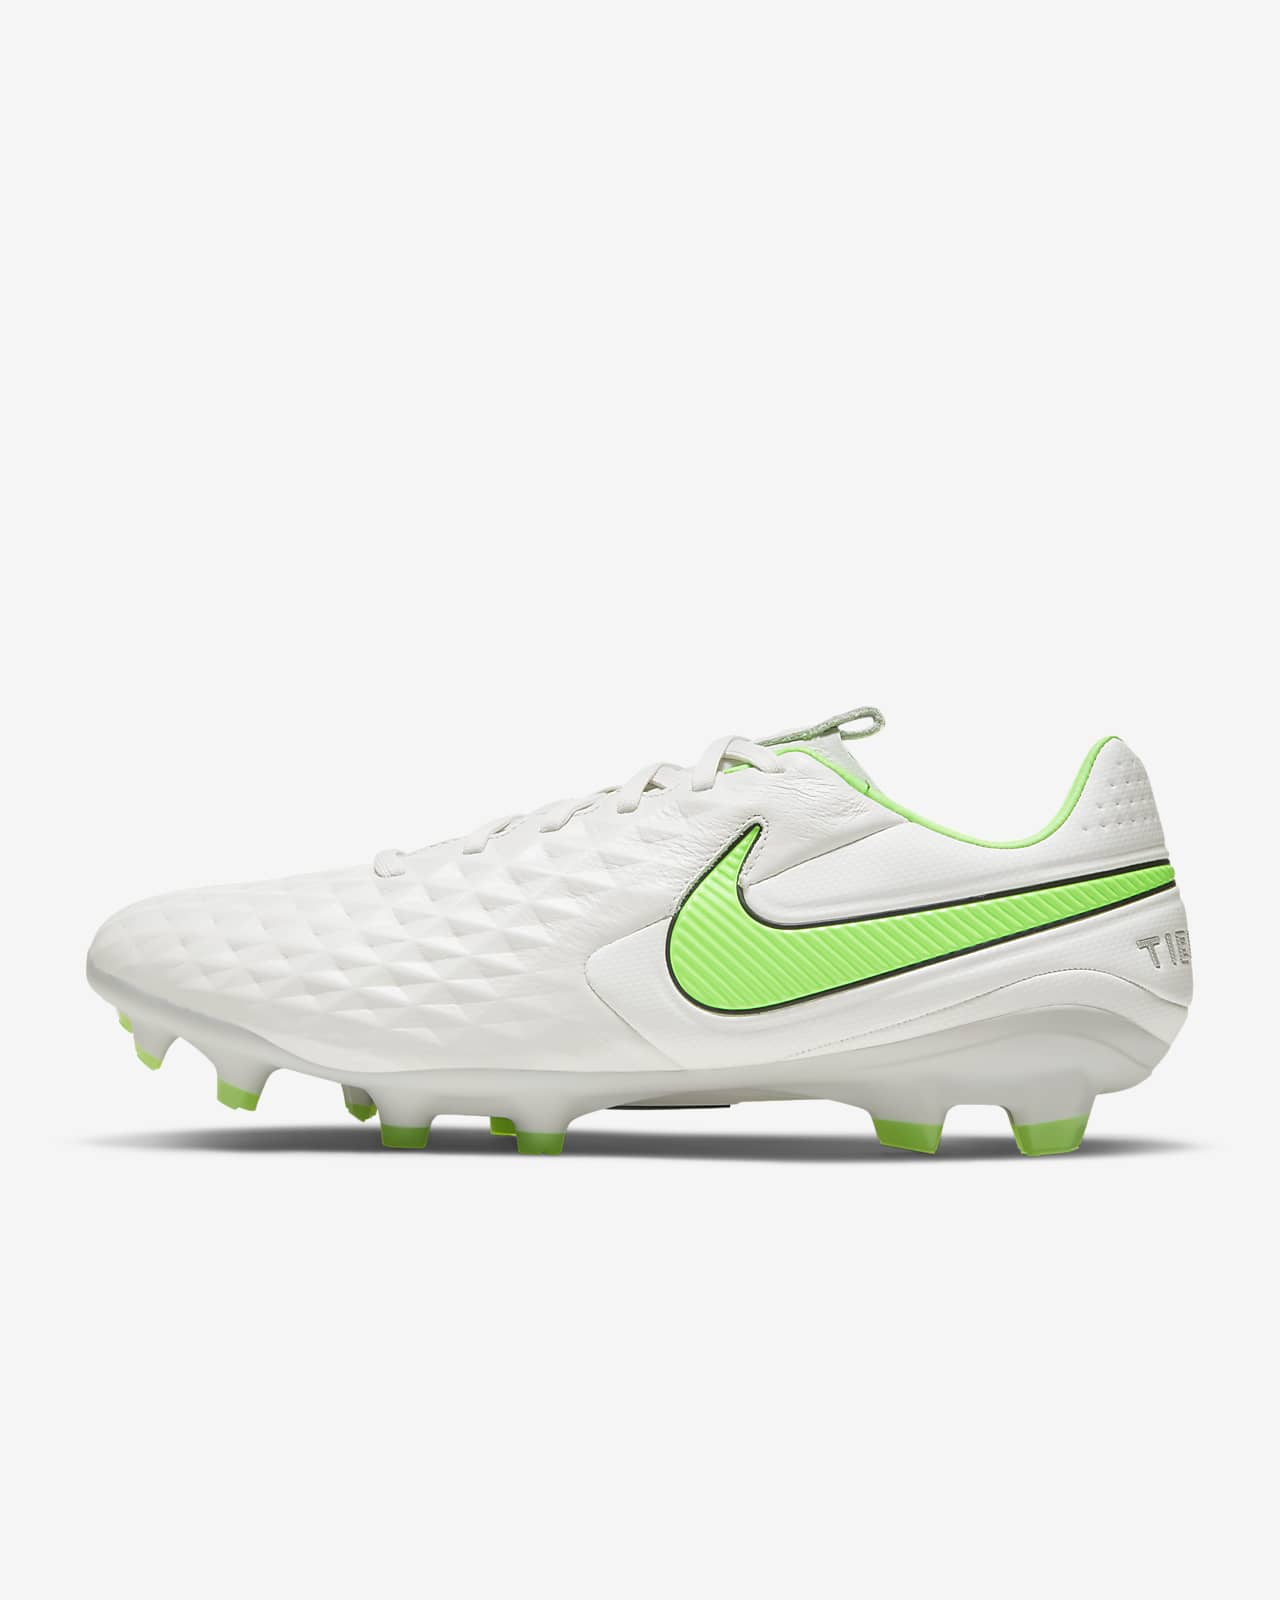 Nike Tiempo Legend 8 Pro FG Firm-Ground Football Boot